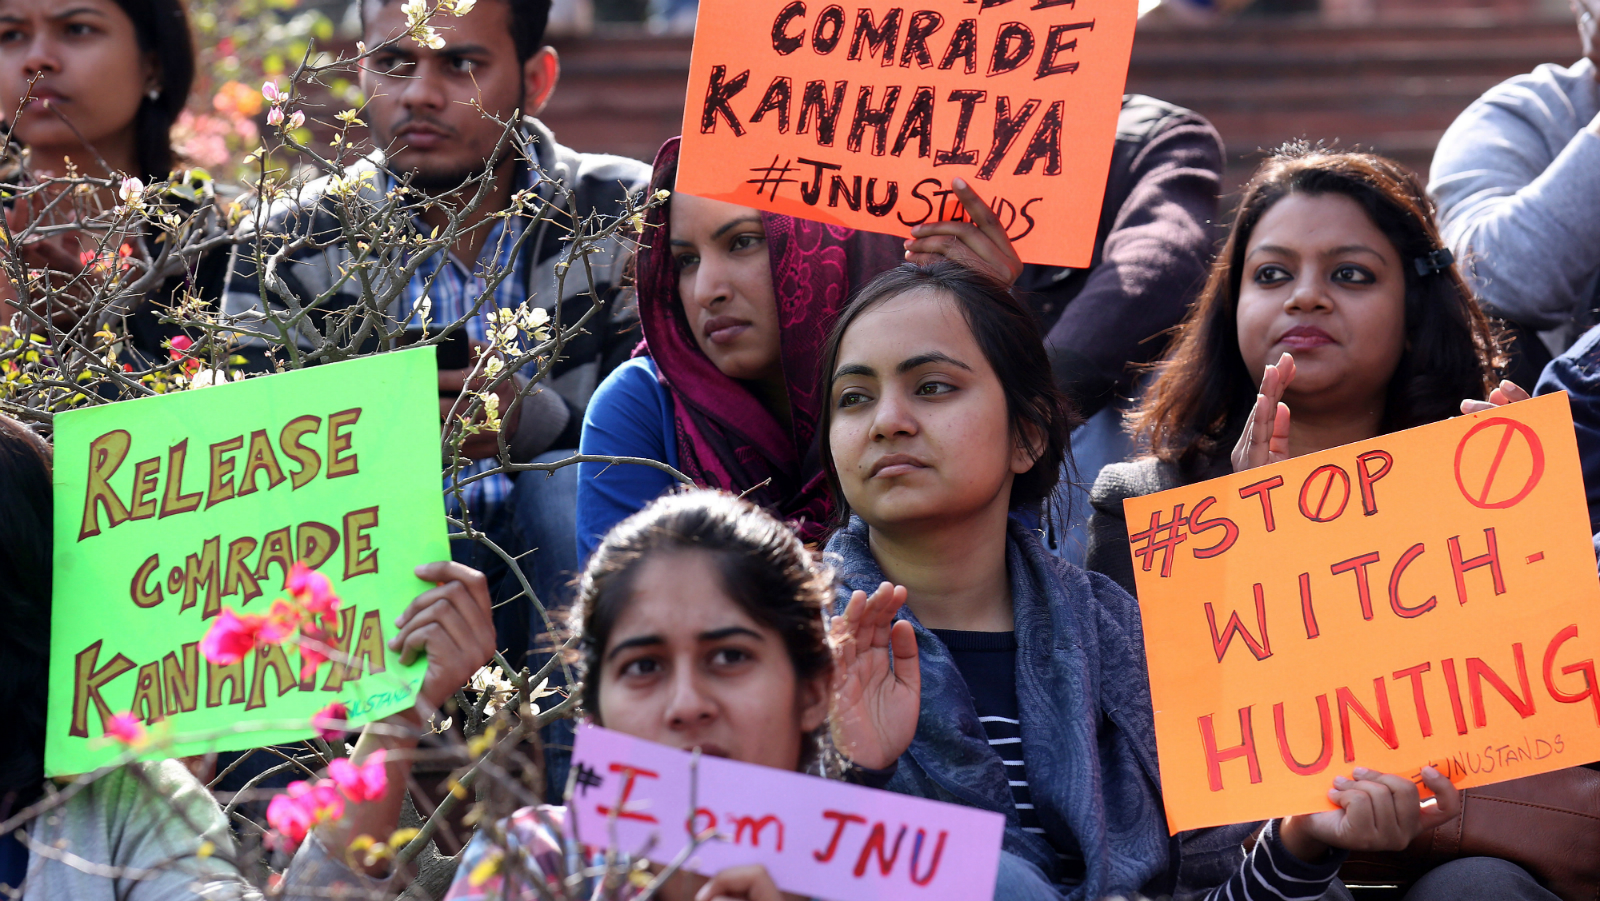 Indian students of the Jawaharlal Nehru University (JNU) hold placards during a protest inside JNU campus in New Delhi, India, 16 February 2016. A former Delhi University professor was arrested on 16 February for sedition, as protests escalated at another university whose students' union president was earlier detained for the same charge. Activists from the ruling Hindu nationalist Bharatiya Janata Party's student wing and right-wing organizations, which accuse demonstrators of being 'anti-nationals', also gathered near the university for counter-protests.